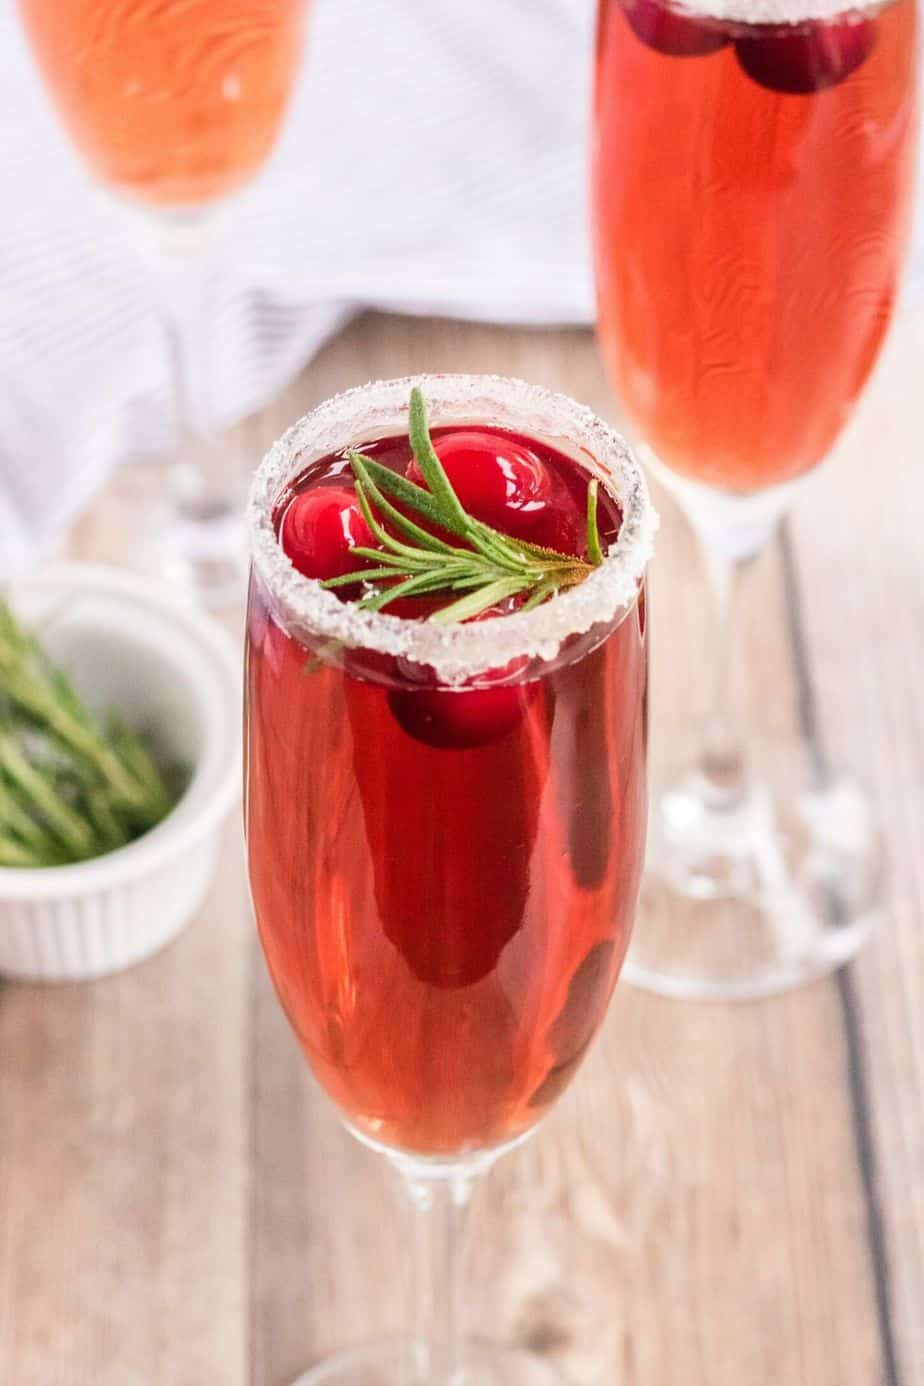 Preparation Tips you can include in your blog post: Brut Champagne is the best bubbly to make mimosa's with. Dry Prosecco or A Cava are also great choices. Whatever you decide, be sure to choose dry since you will be adding juice. Frozen cranberries will work just fine for this recipe. Orange and cranberry go together so nicely, but you can change up the flavor by using lemon or lime on the rim as well.